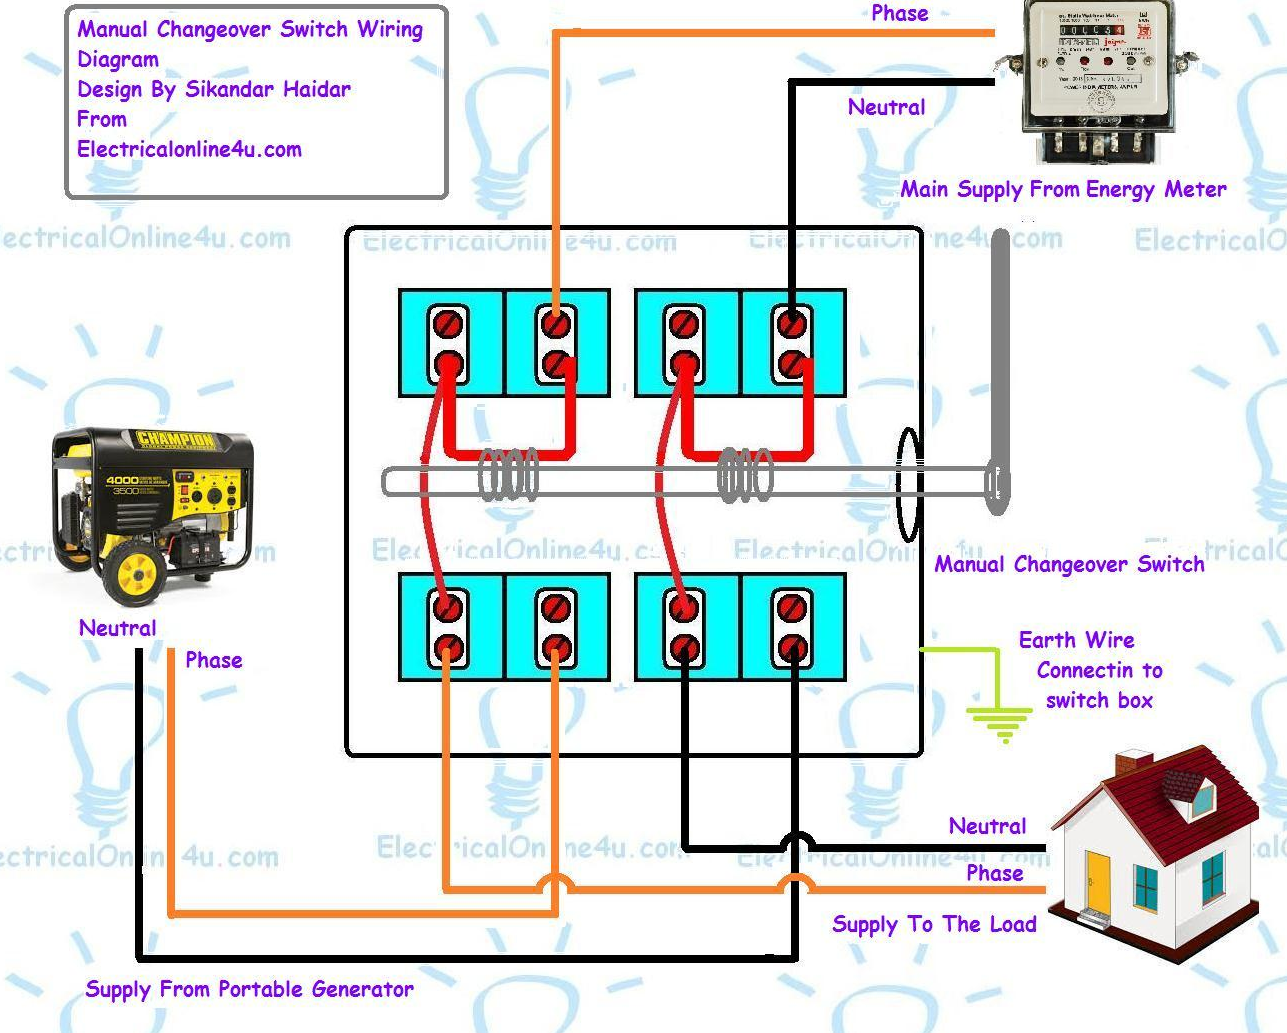 Manual changeover switch wiring diagram for portable generator manual changeover switch wiring diagram asfbconference2016 Choice Image